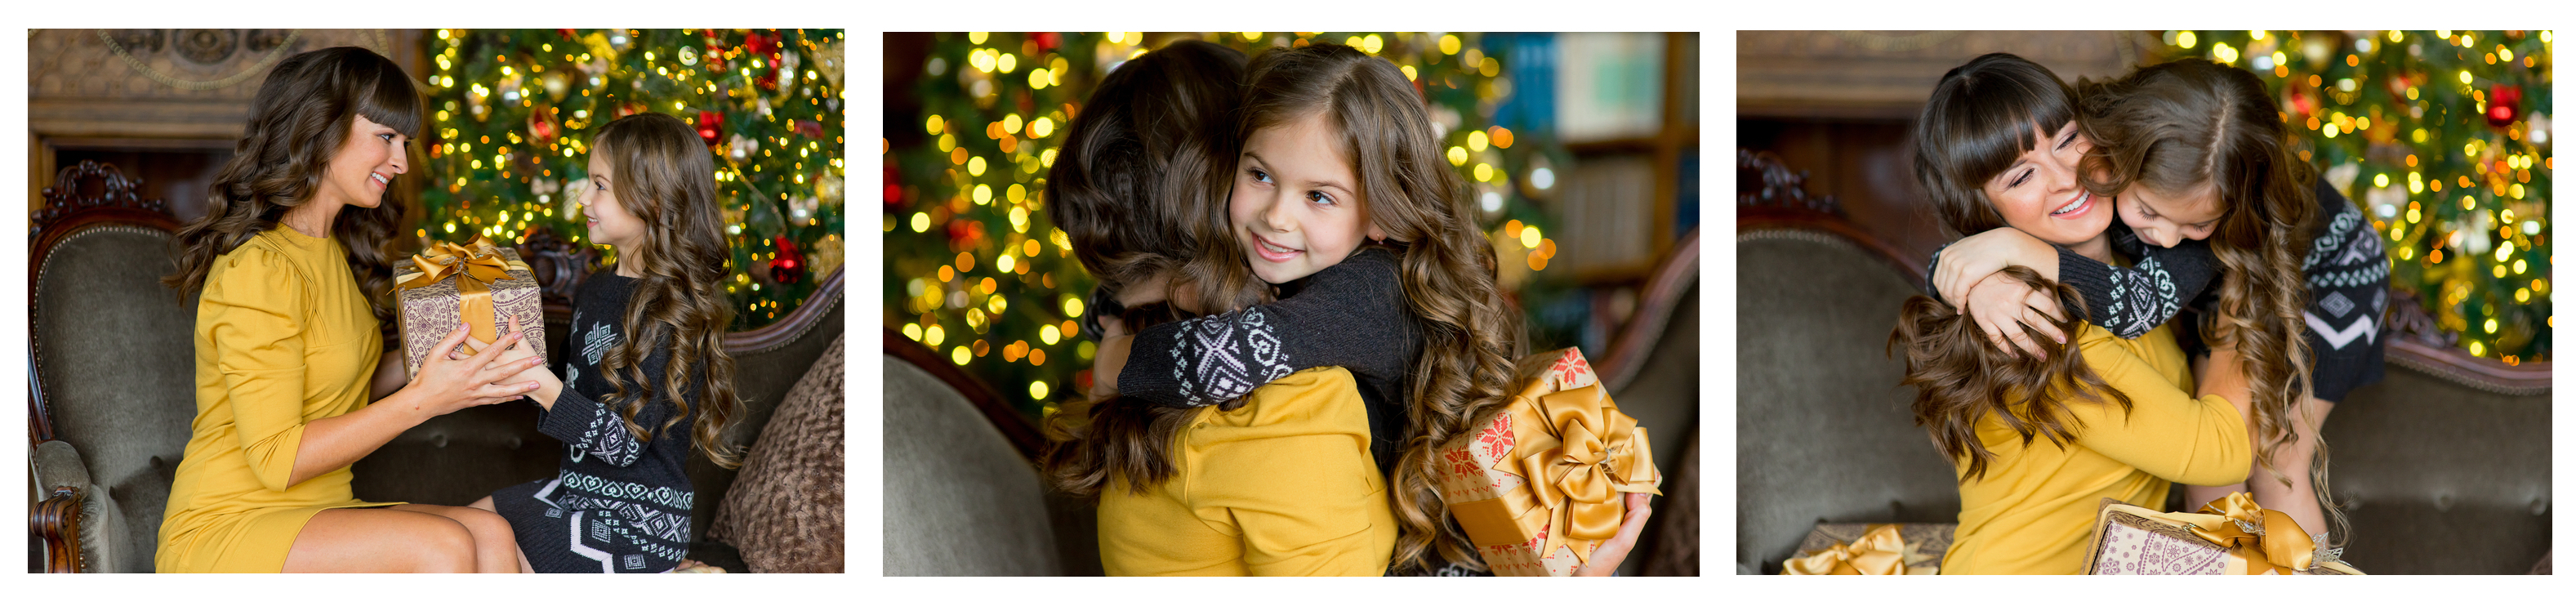 how to photograph family at christmas